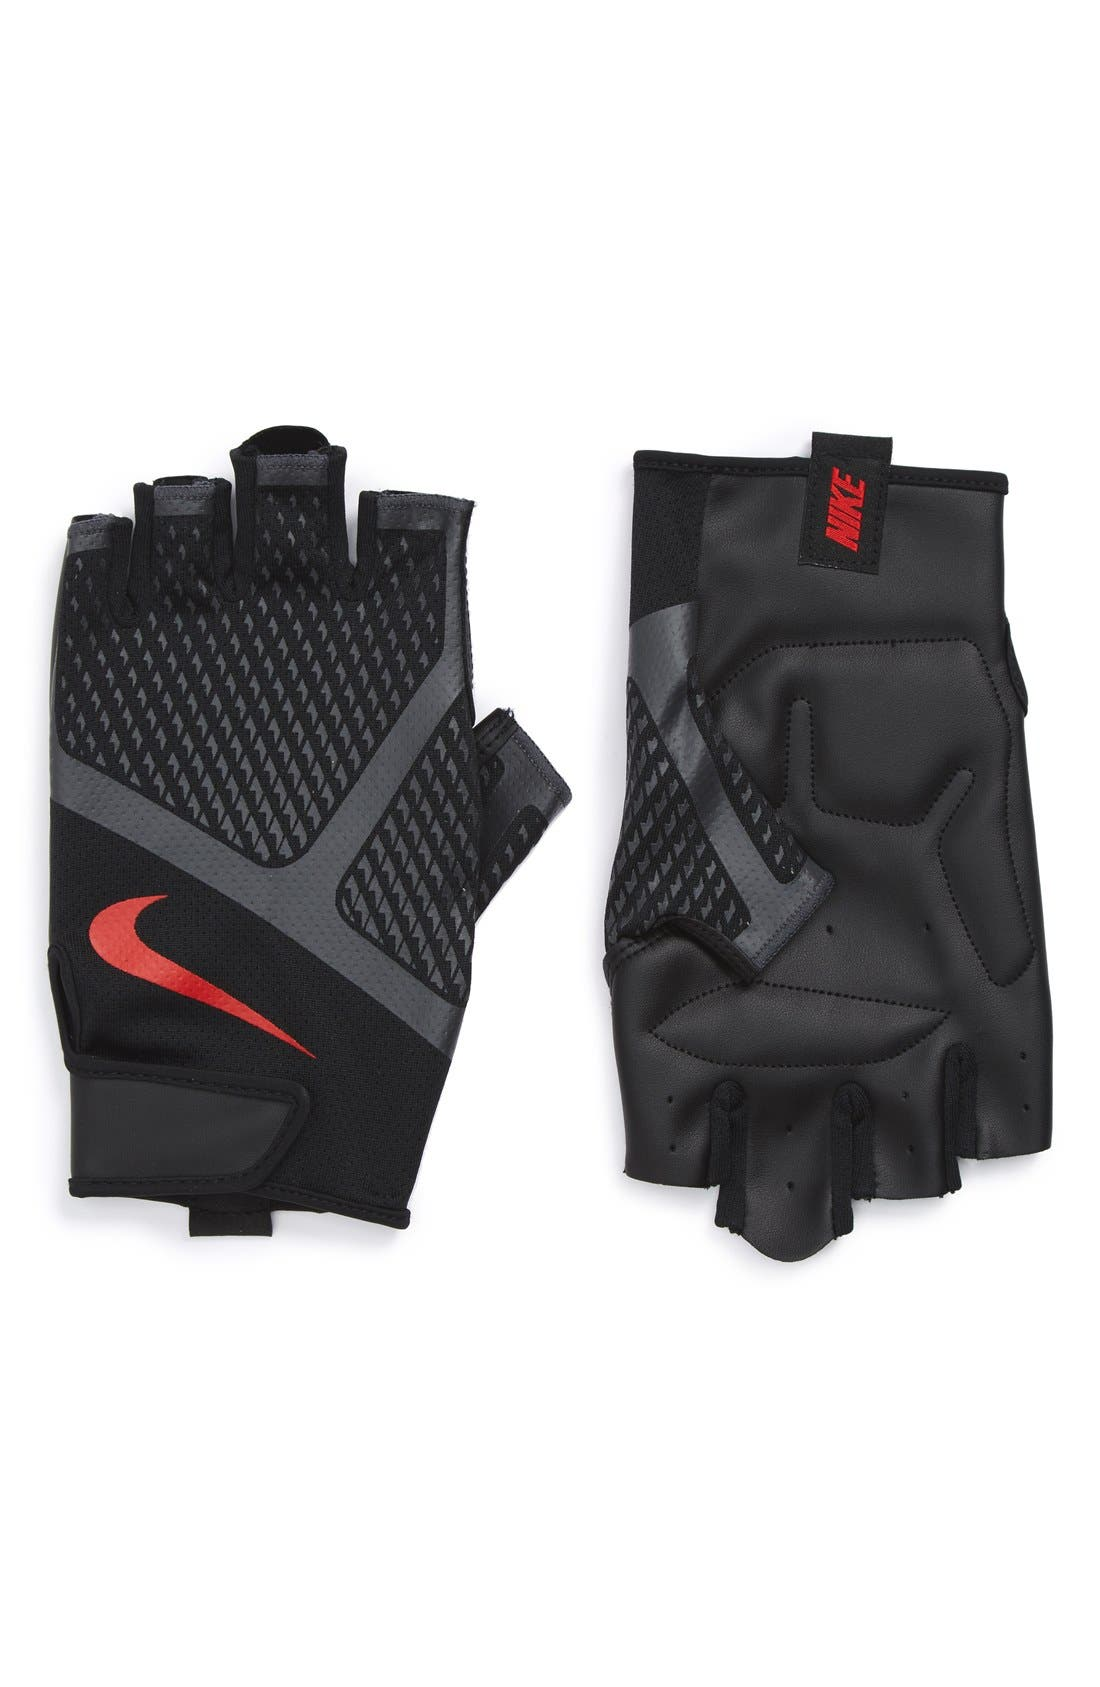 Main Image - Nike 'Renegade' Fingerless Padded Training Gloves